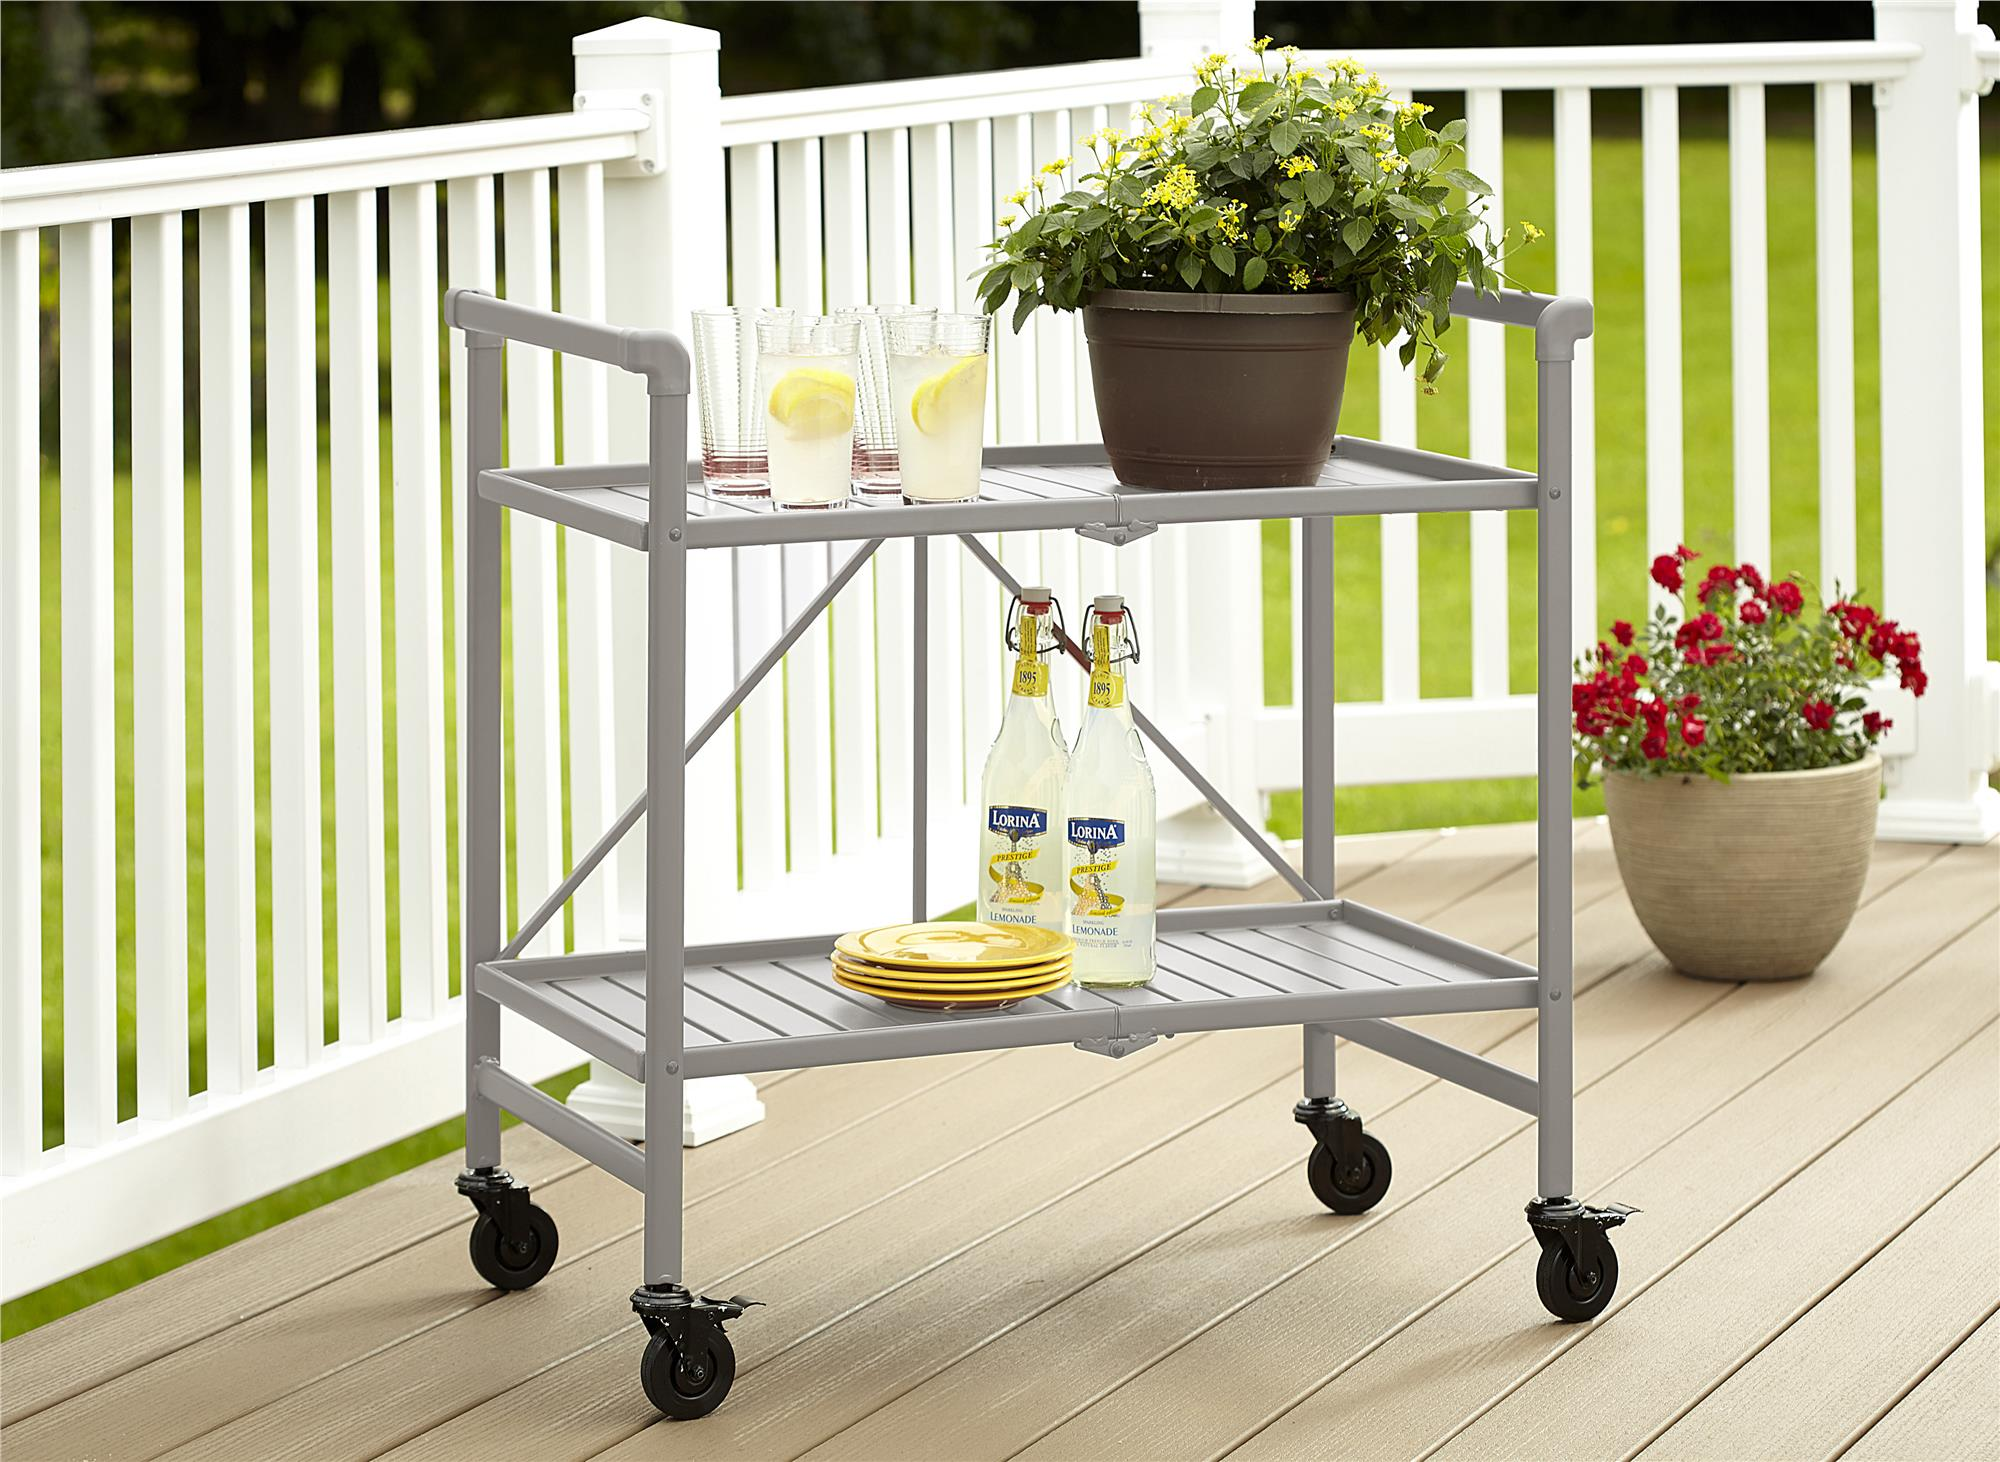 COSCO Outdoor Living SMARTFOLD Outdoor Or Indoor Folding Serving Cart, Multiple Colors by Cosco